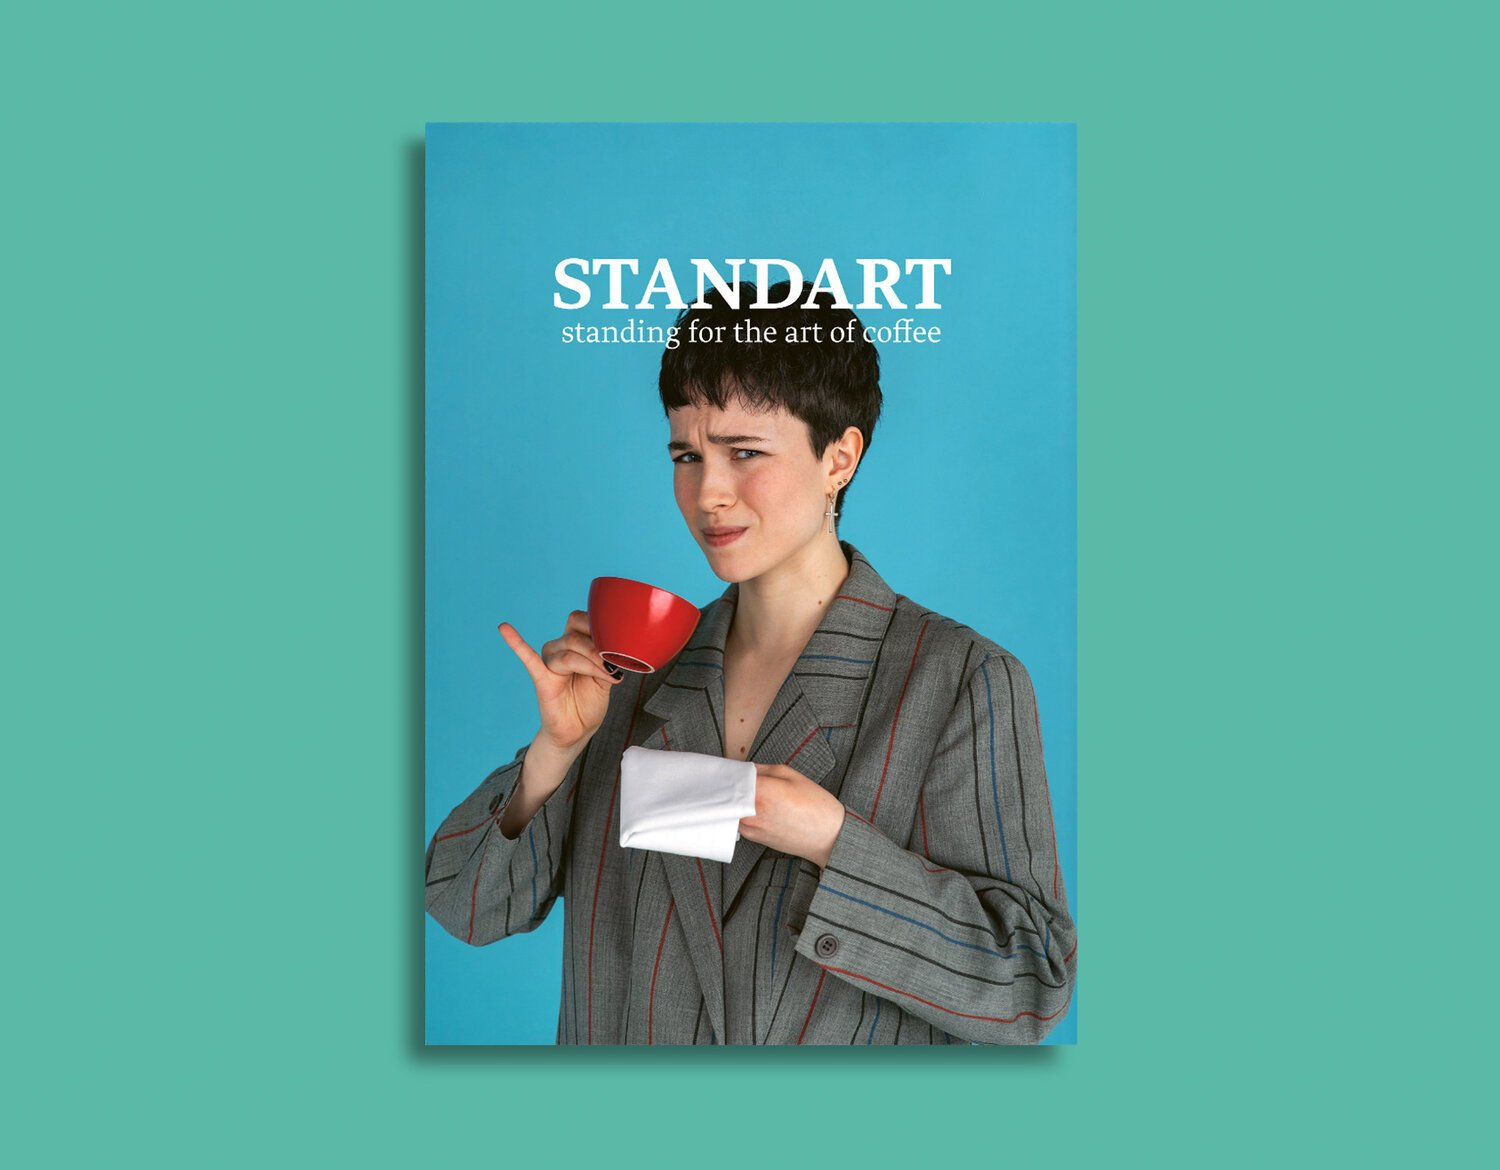 Standard Coffee Magazine with a woman drinking coffee on the front cover